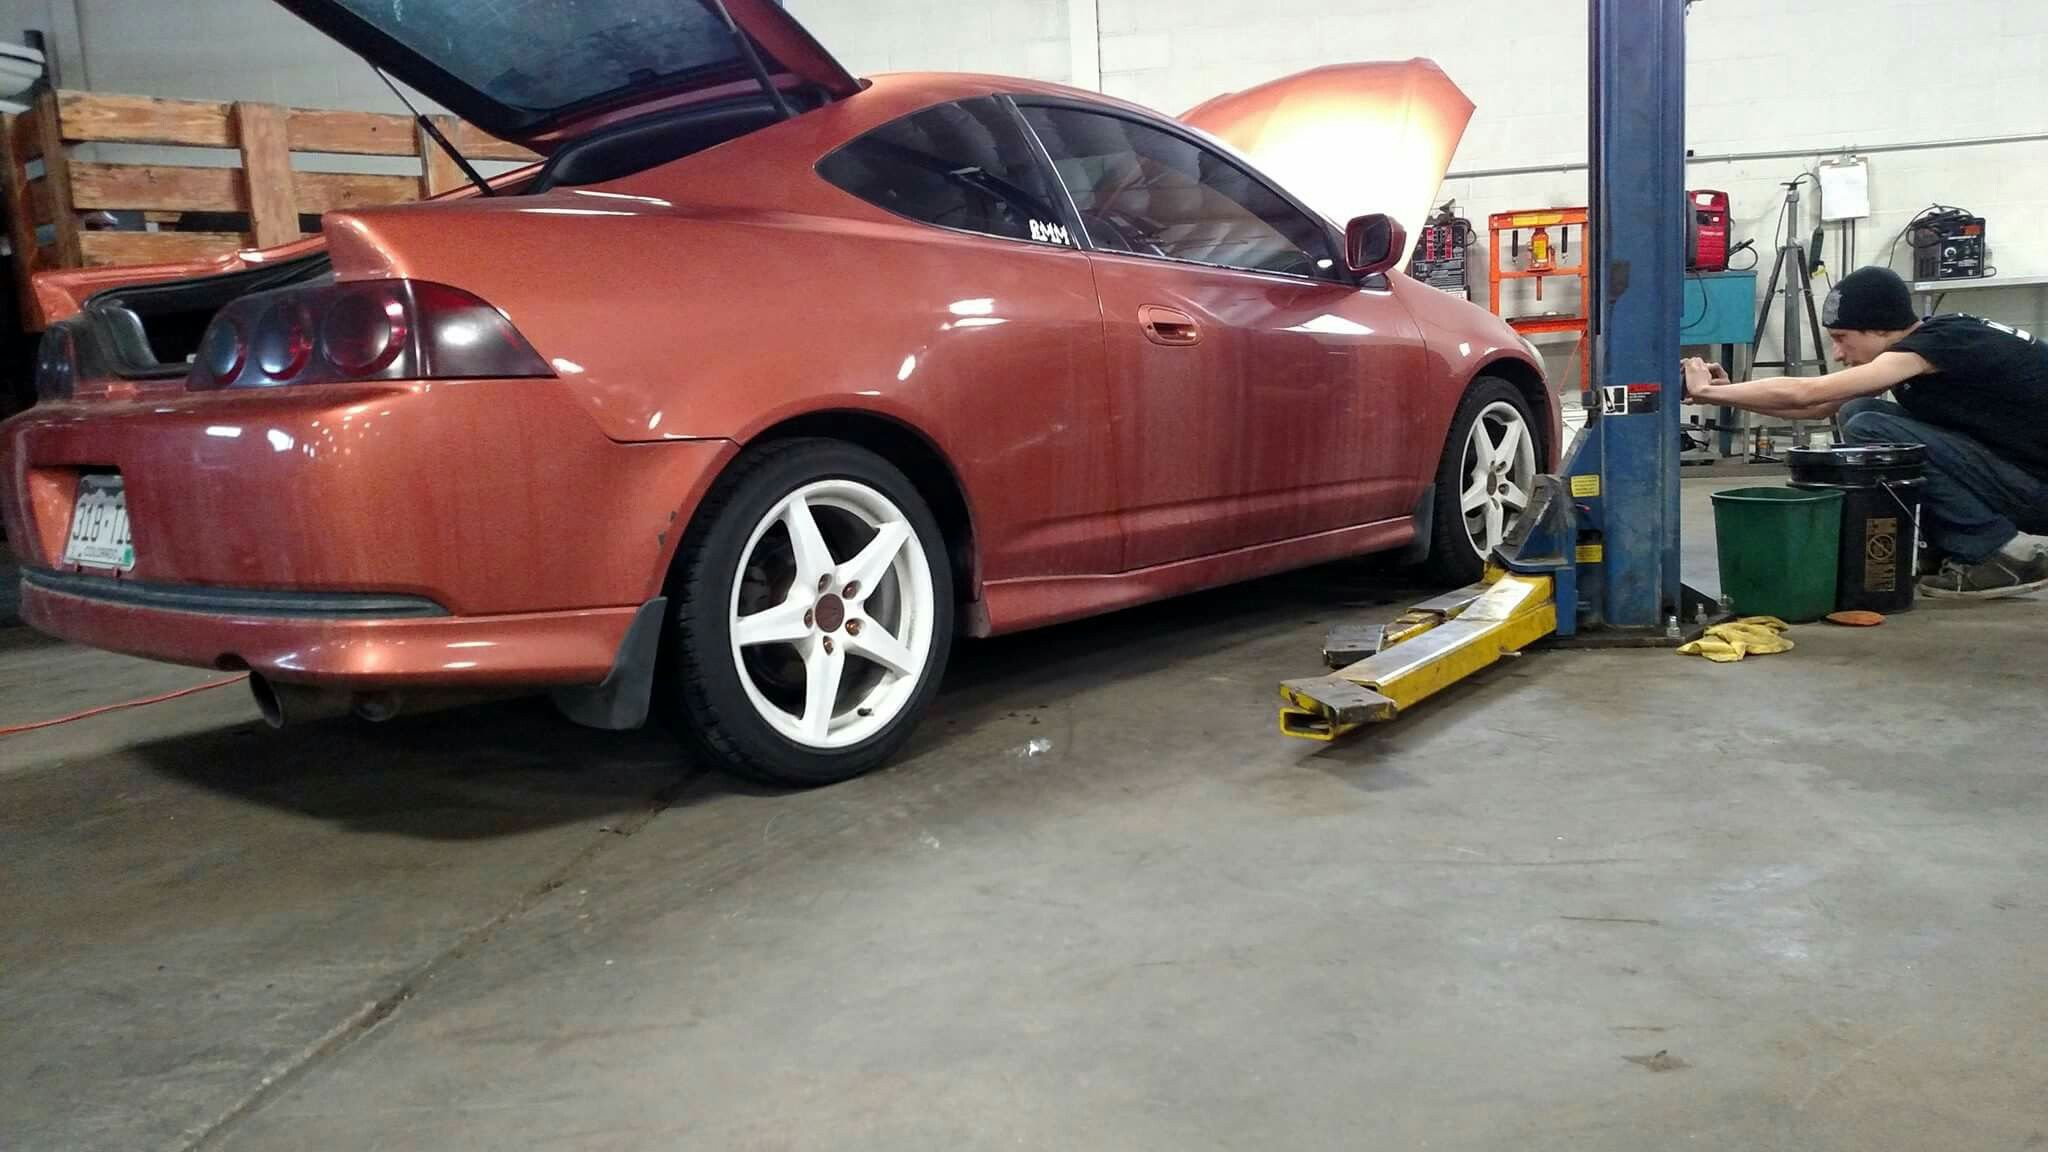 2005 Acura Rsx Lowered 2 5 Inches On Skunk 2 Coilovers Lower Tie Bar Rear Strut Bar Poly Sway Bar Bushings 7 Inch Led L Led Light Bars Acura Rsx Coilovers